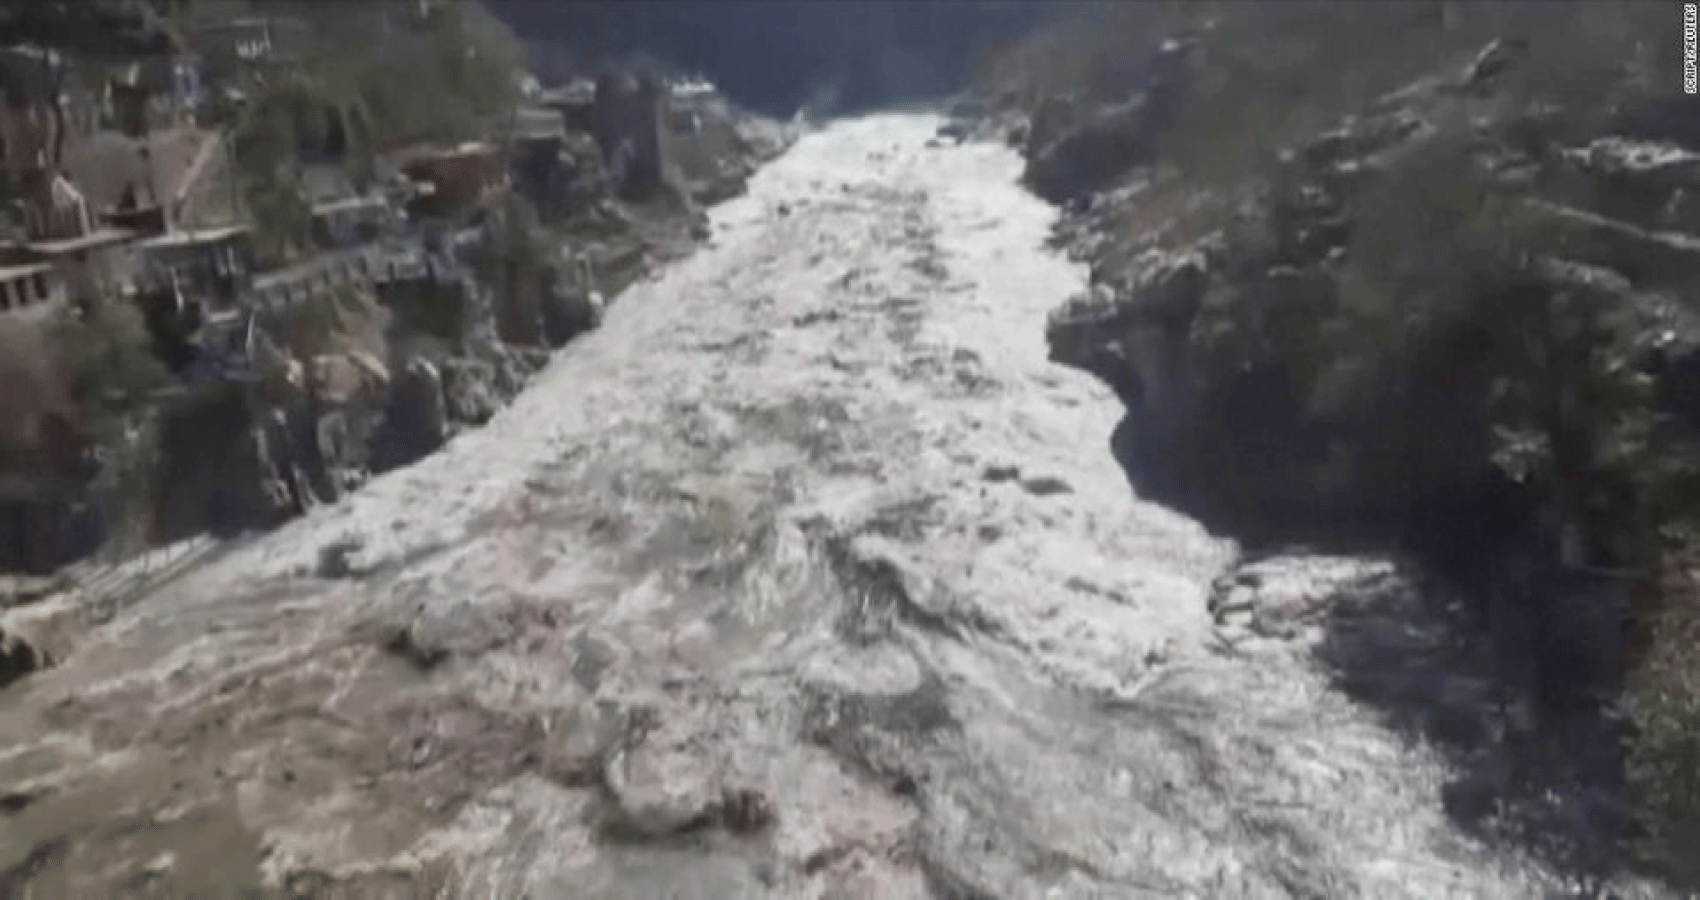 Uttarakhand-Glacier-Bursts-Disrupts-Life-Many-Die-Dozens-Missing